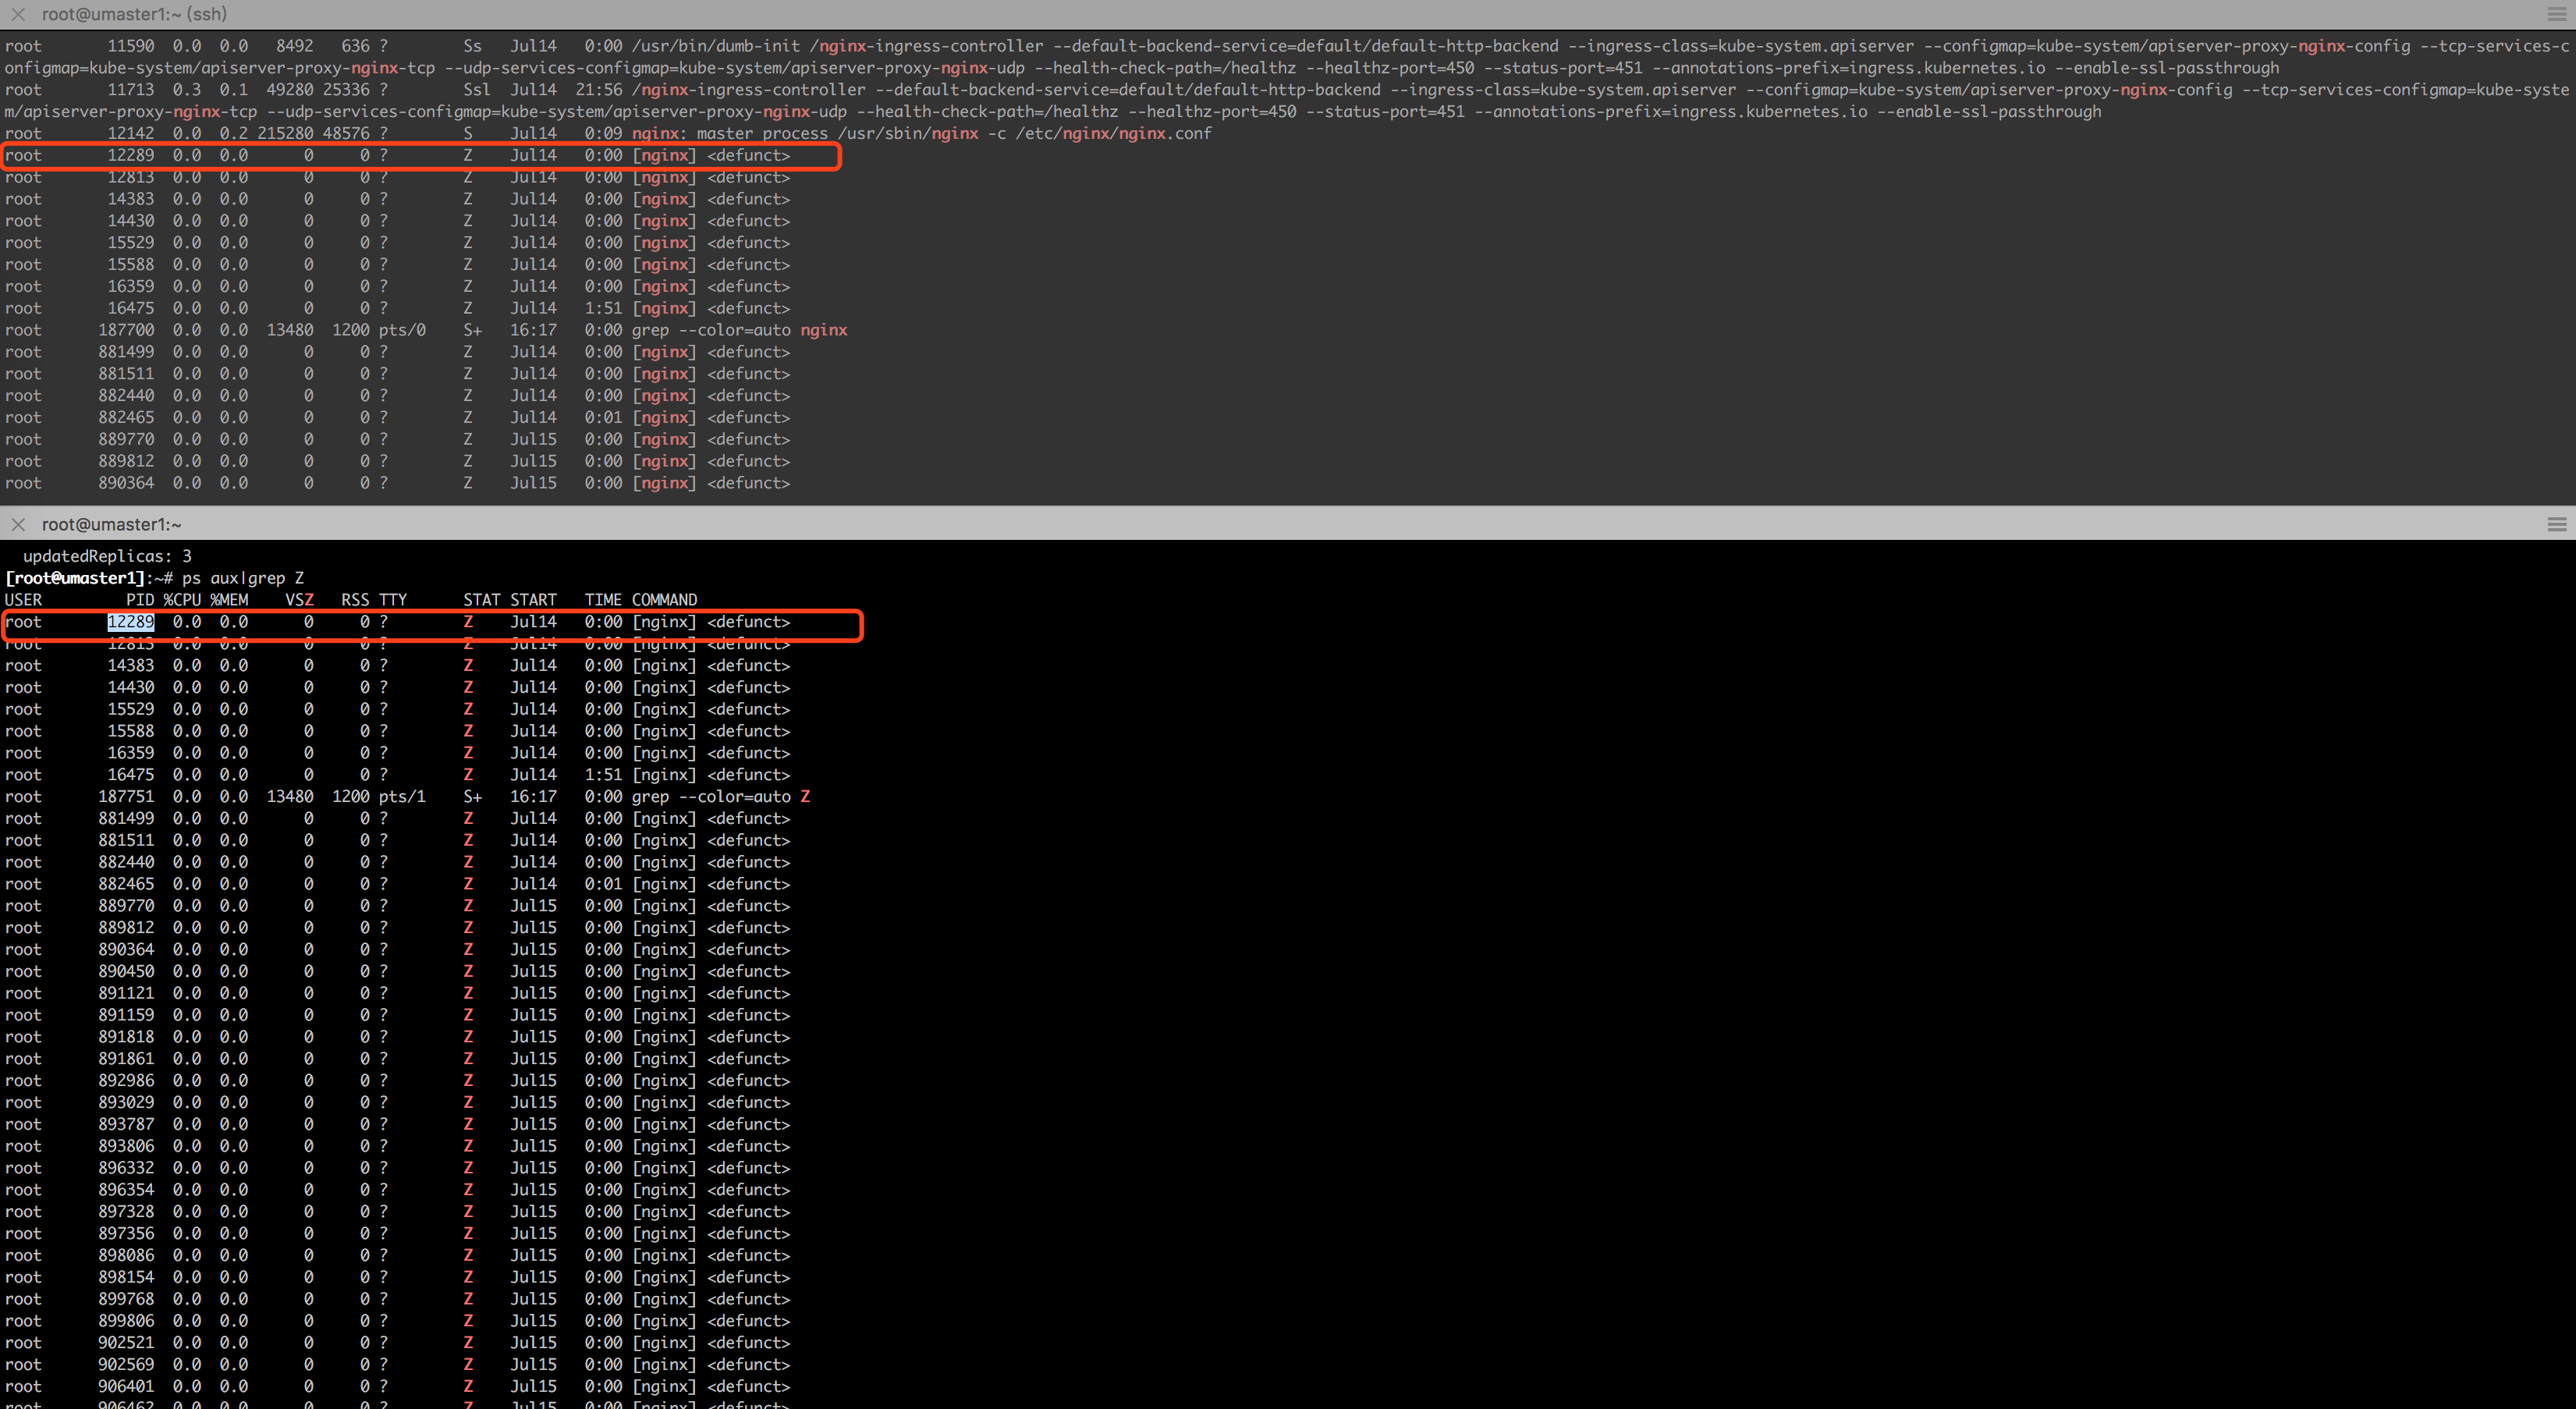 There are many nginx zombie processes when I start ingress